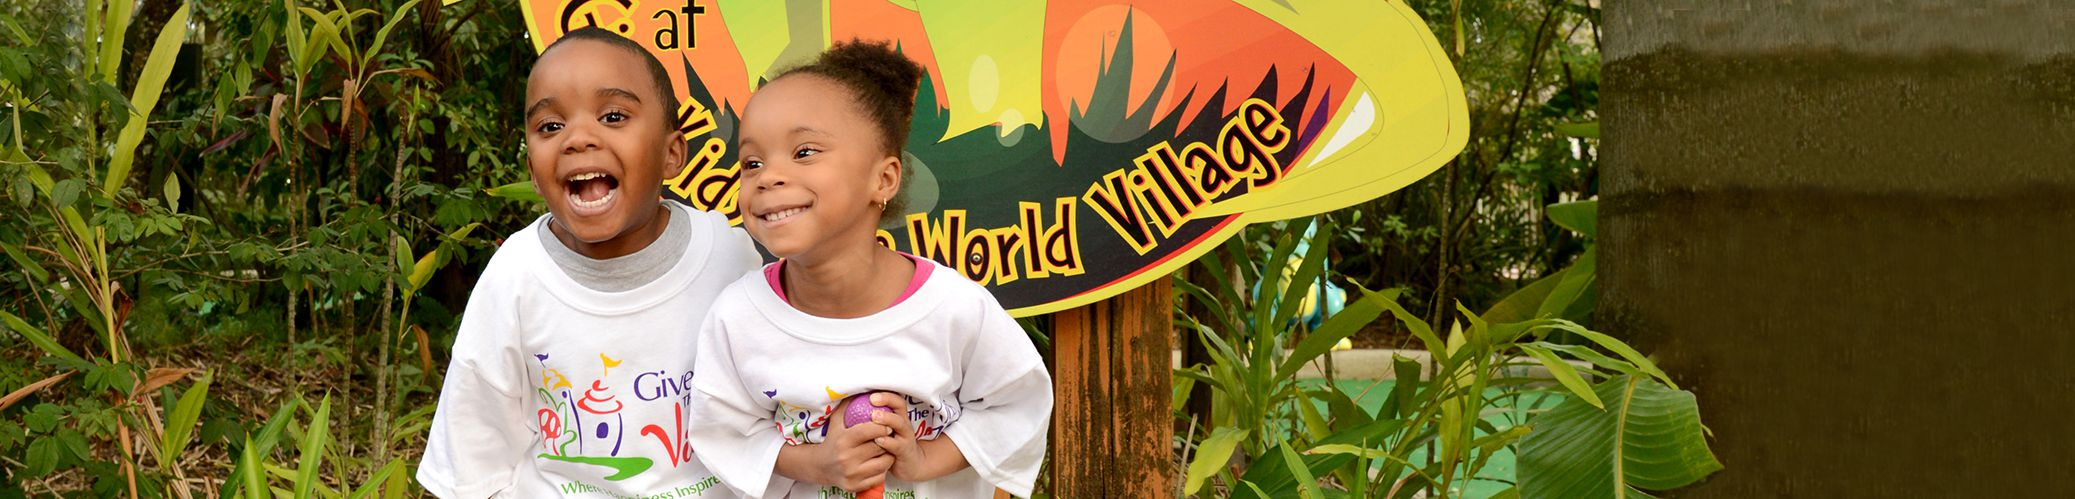 Children's Charity - Give Kids The World Village